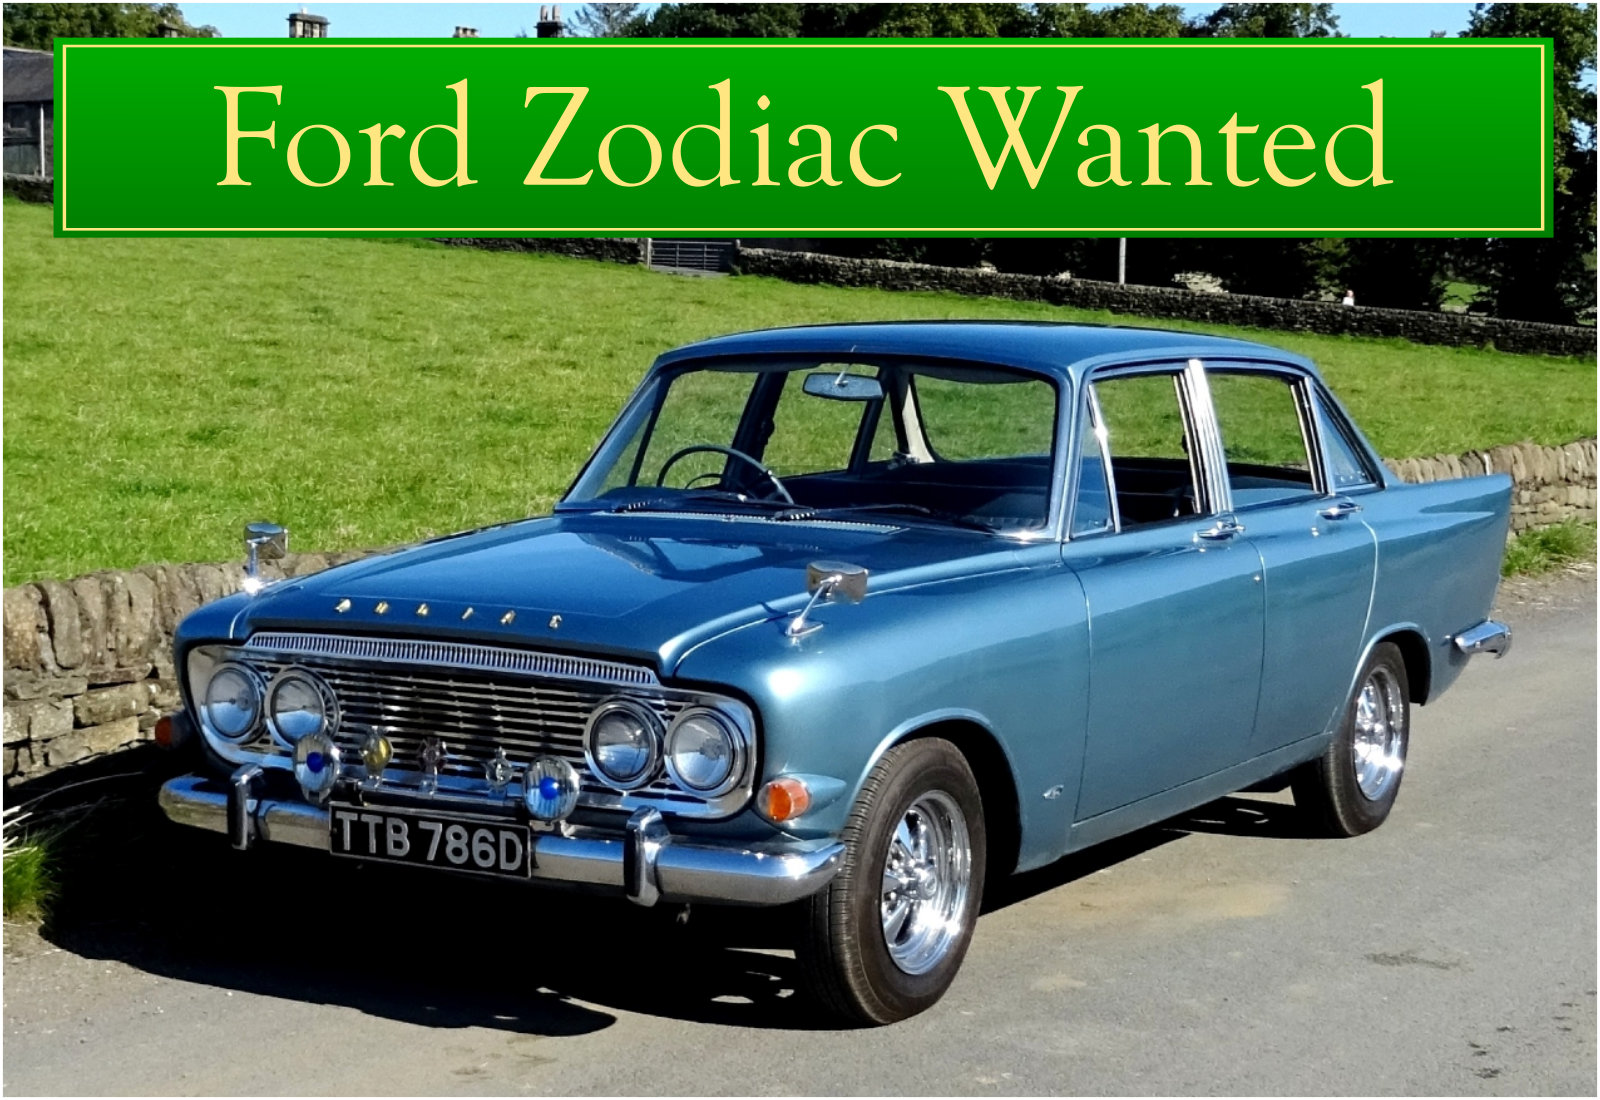 FORD ZEPHYR WANTED, CLASSIC CARS WANTED, IMMEDIATE PAYMENT Wanted (picture 4 of 6)